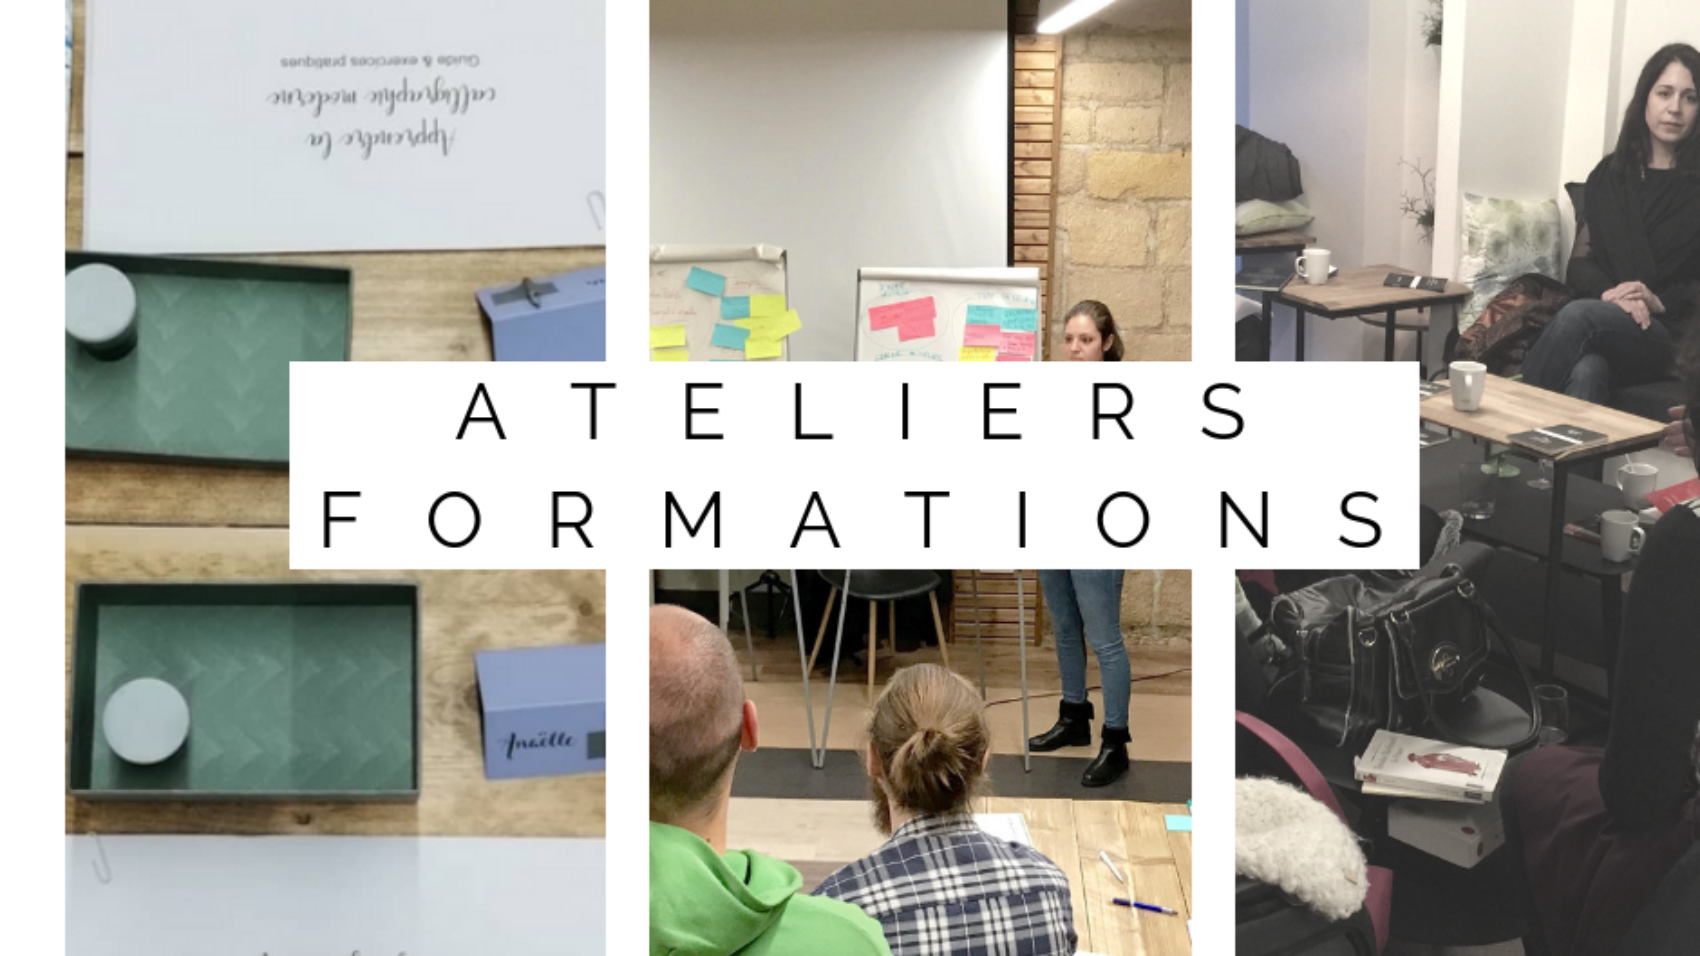 ATELIERS formations